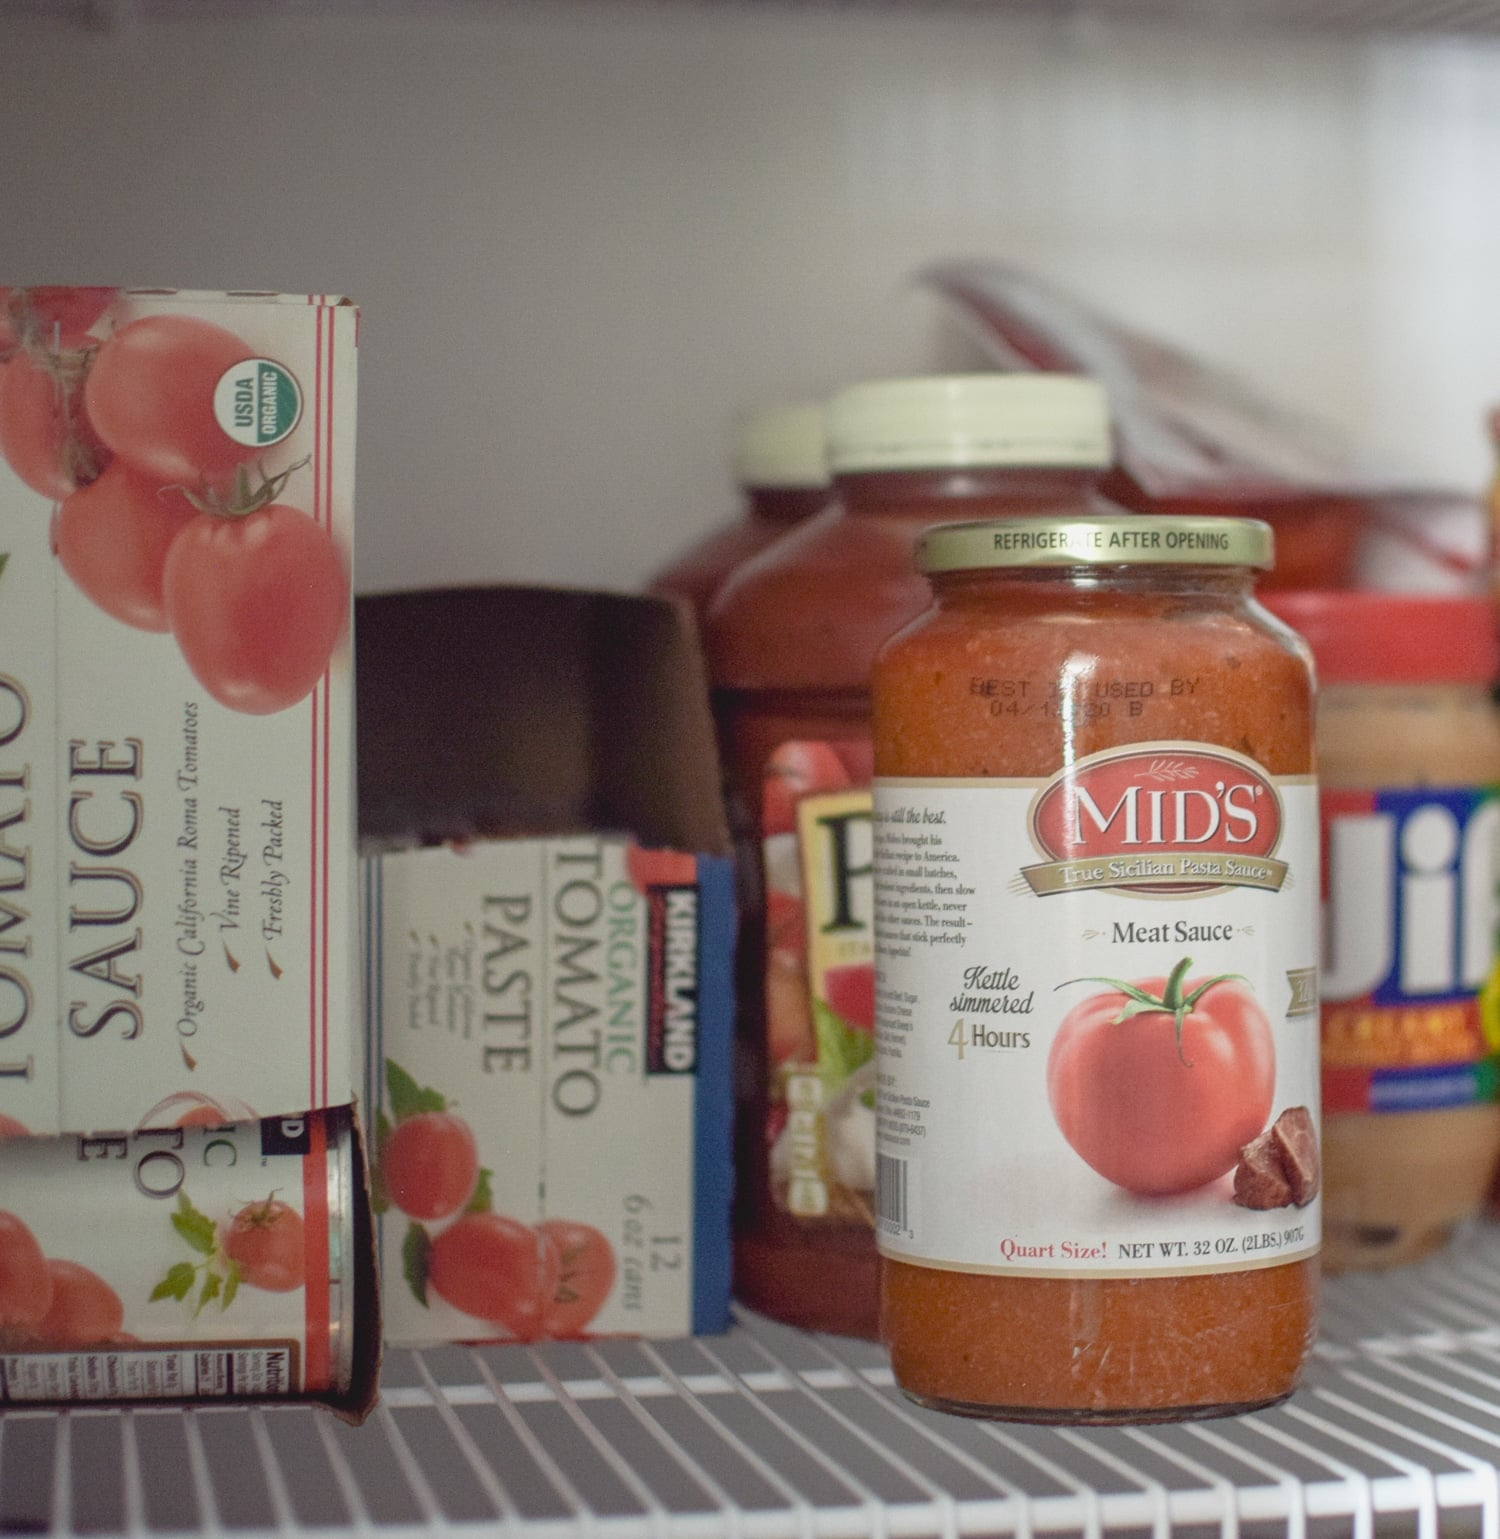 Pasta sauce and tomato paste are two pantry staples that are perfect ingredients for many last minute dinner ideas